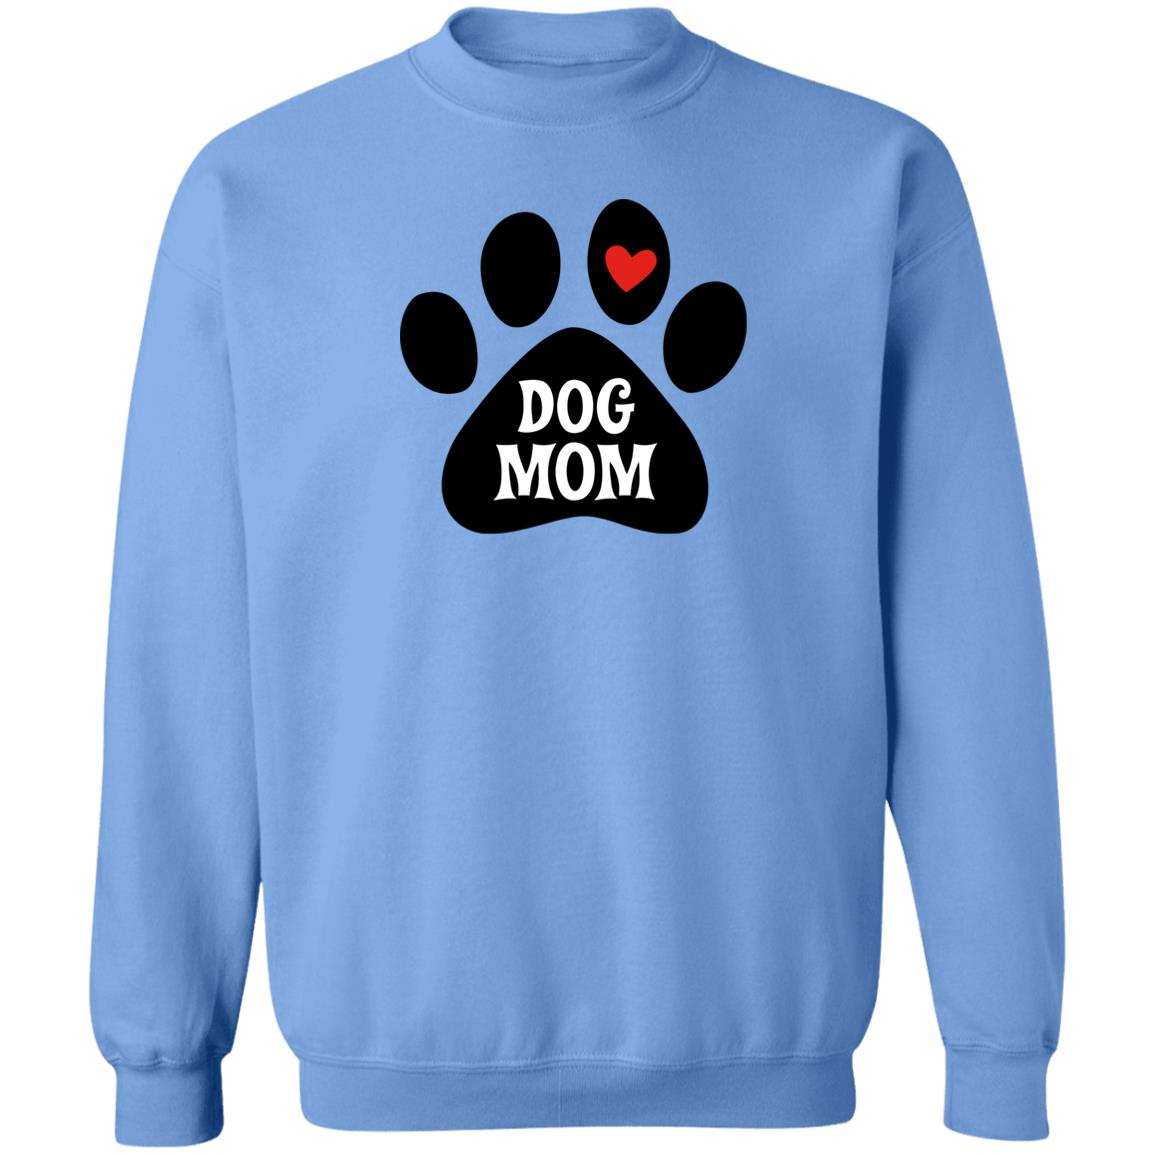 I'm A Dog Mom ❤️ Sweatshirt 🐾  Deal Up To 25% Off!